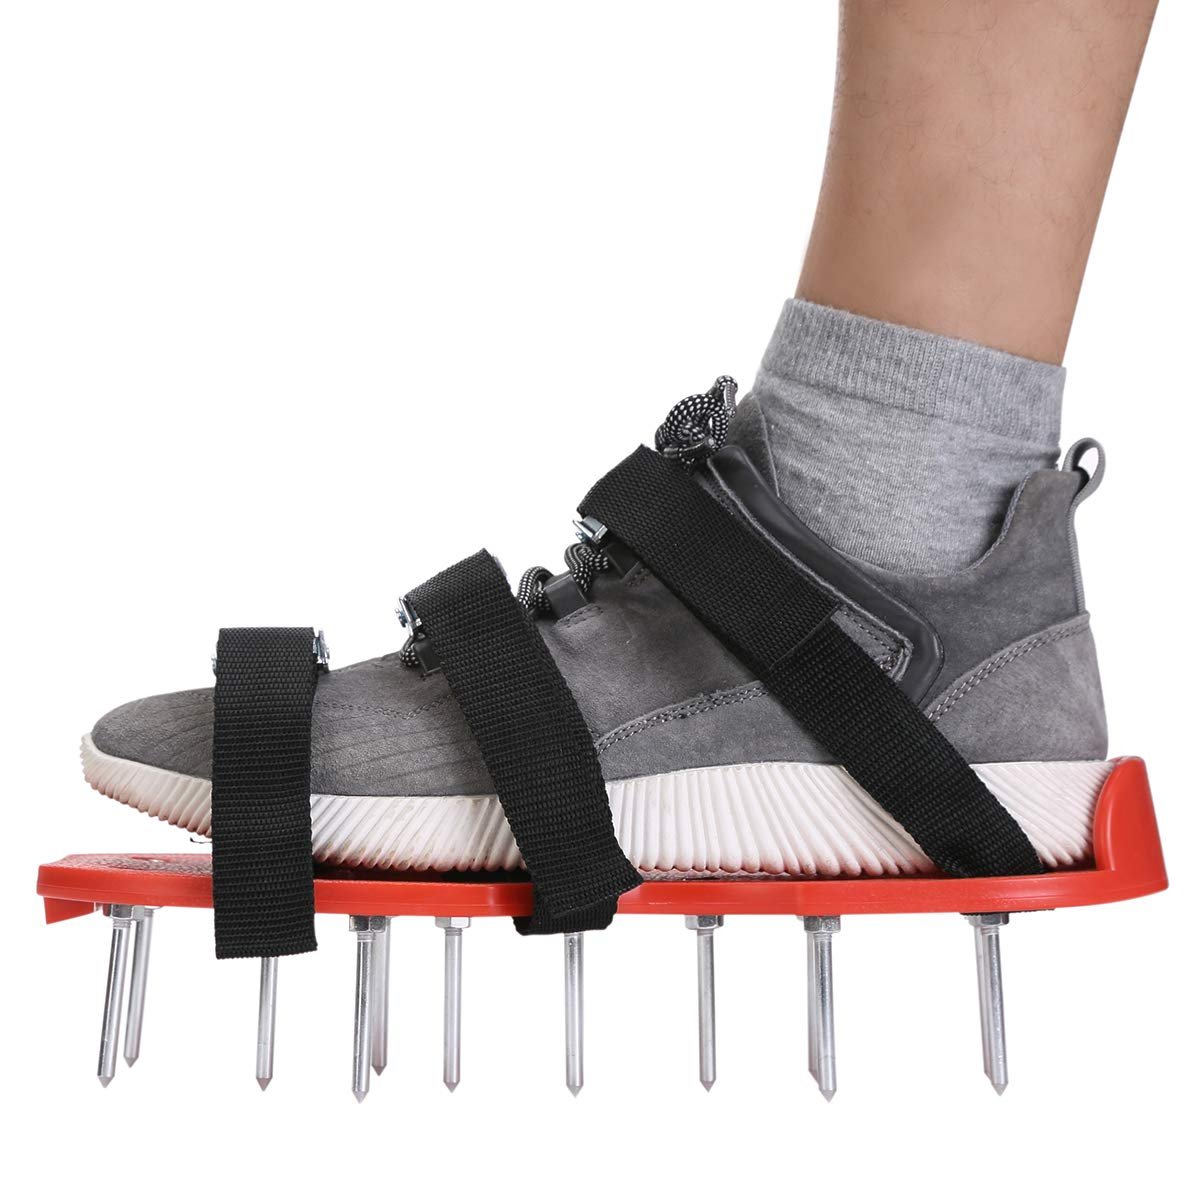 Navegando Lawn Aerator Spike Shoes- Yard Garden Tools with Heavy Duty Steel Spikes, Adjustable Straps and Metal Buckles Kit